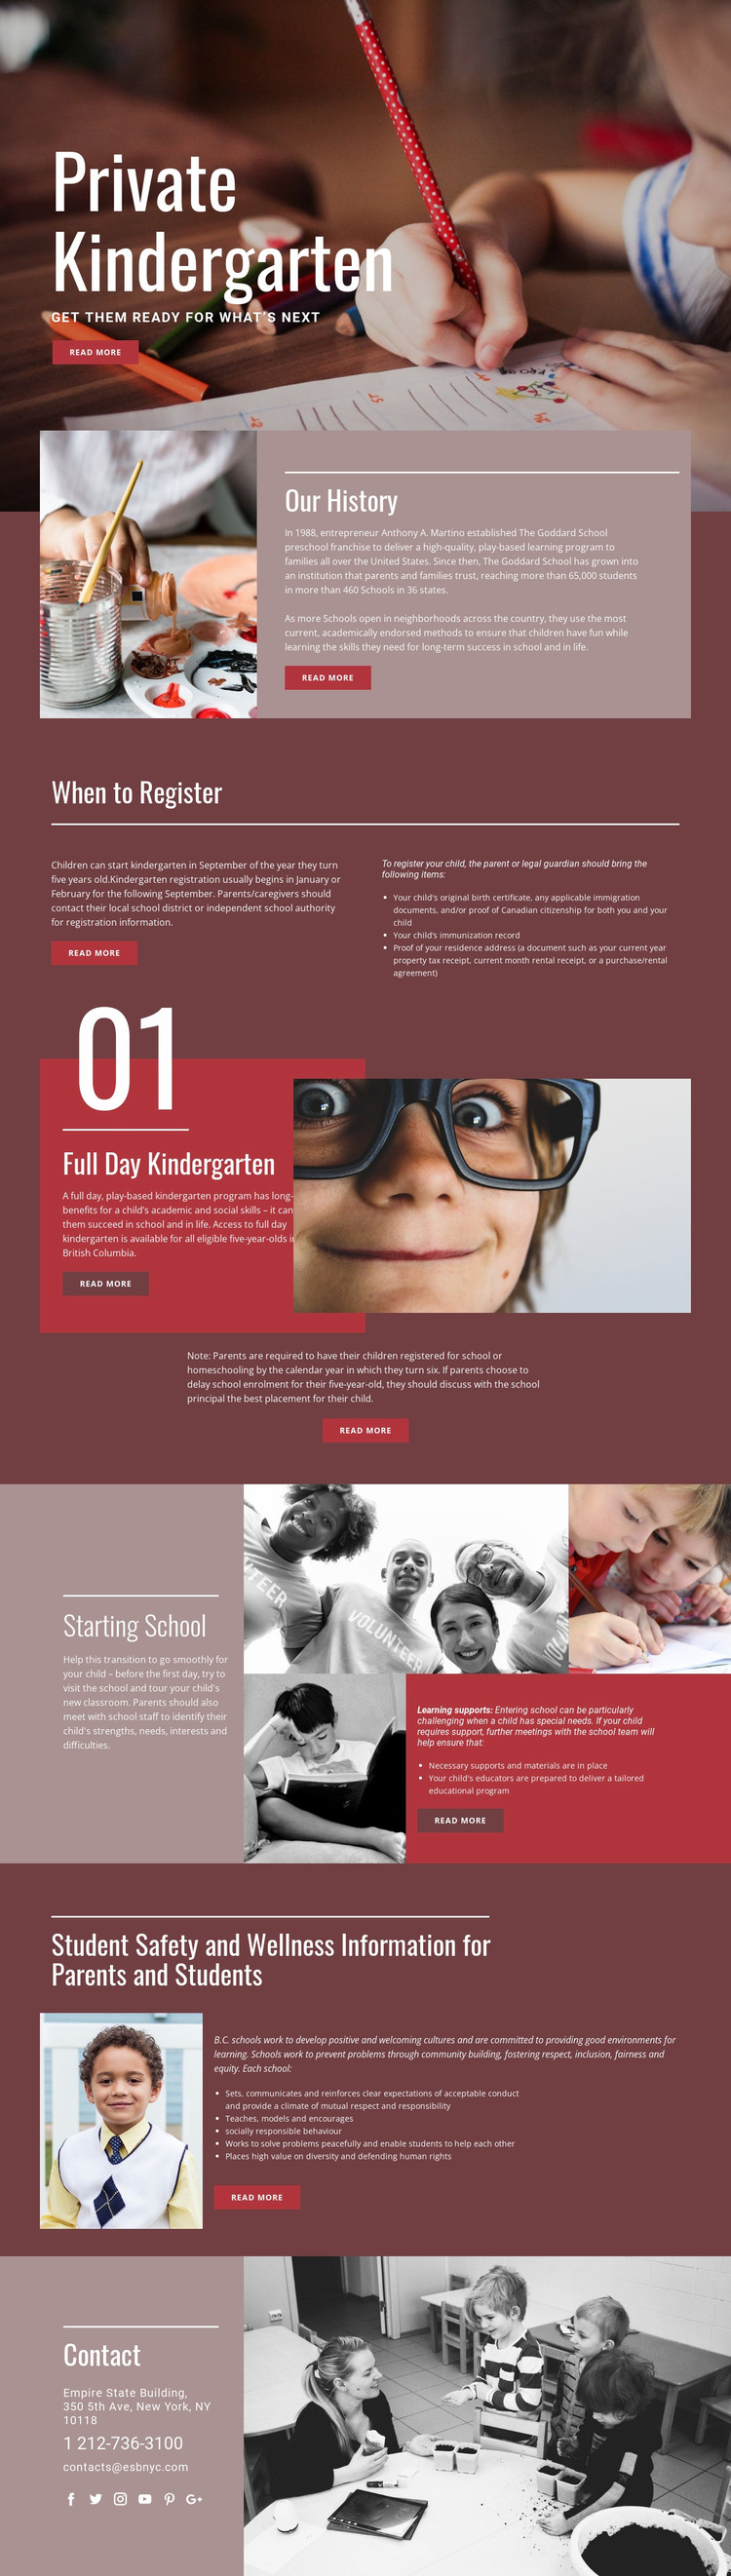 Private elementary education Website Mockup